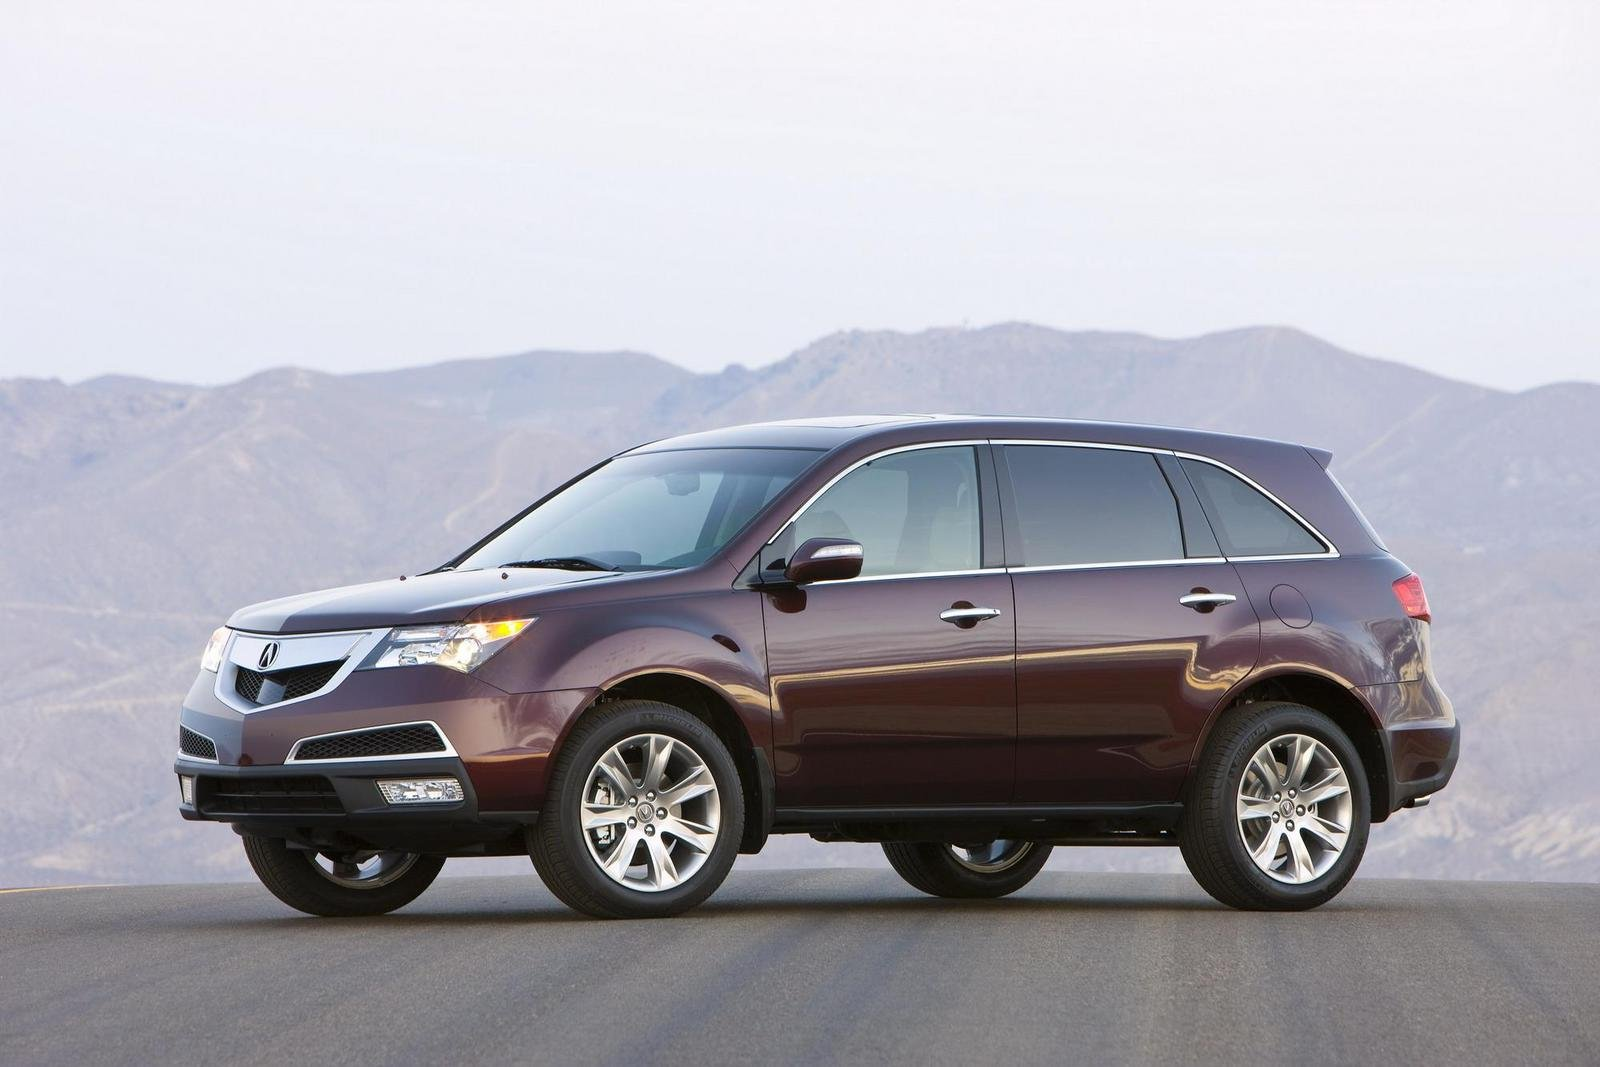 2010 acura mdx picture 323004 car review top speed. Black Bedroom Furniture Sets. Home Design Ideas